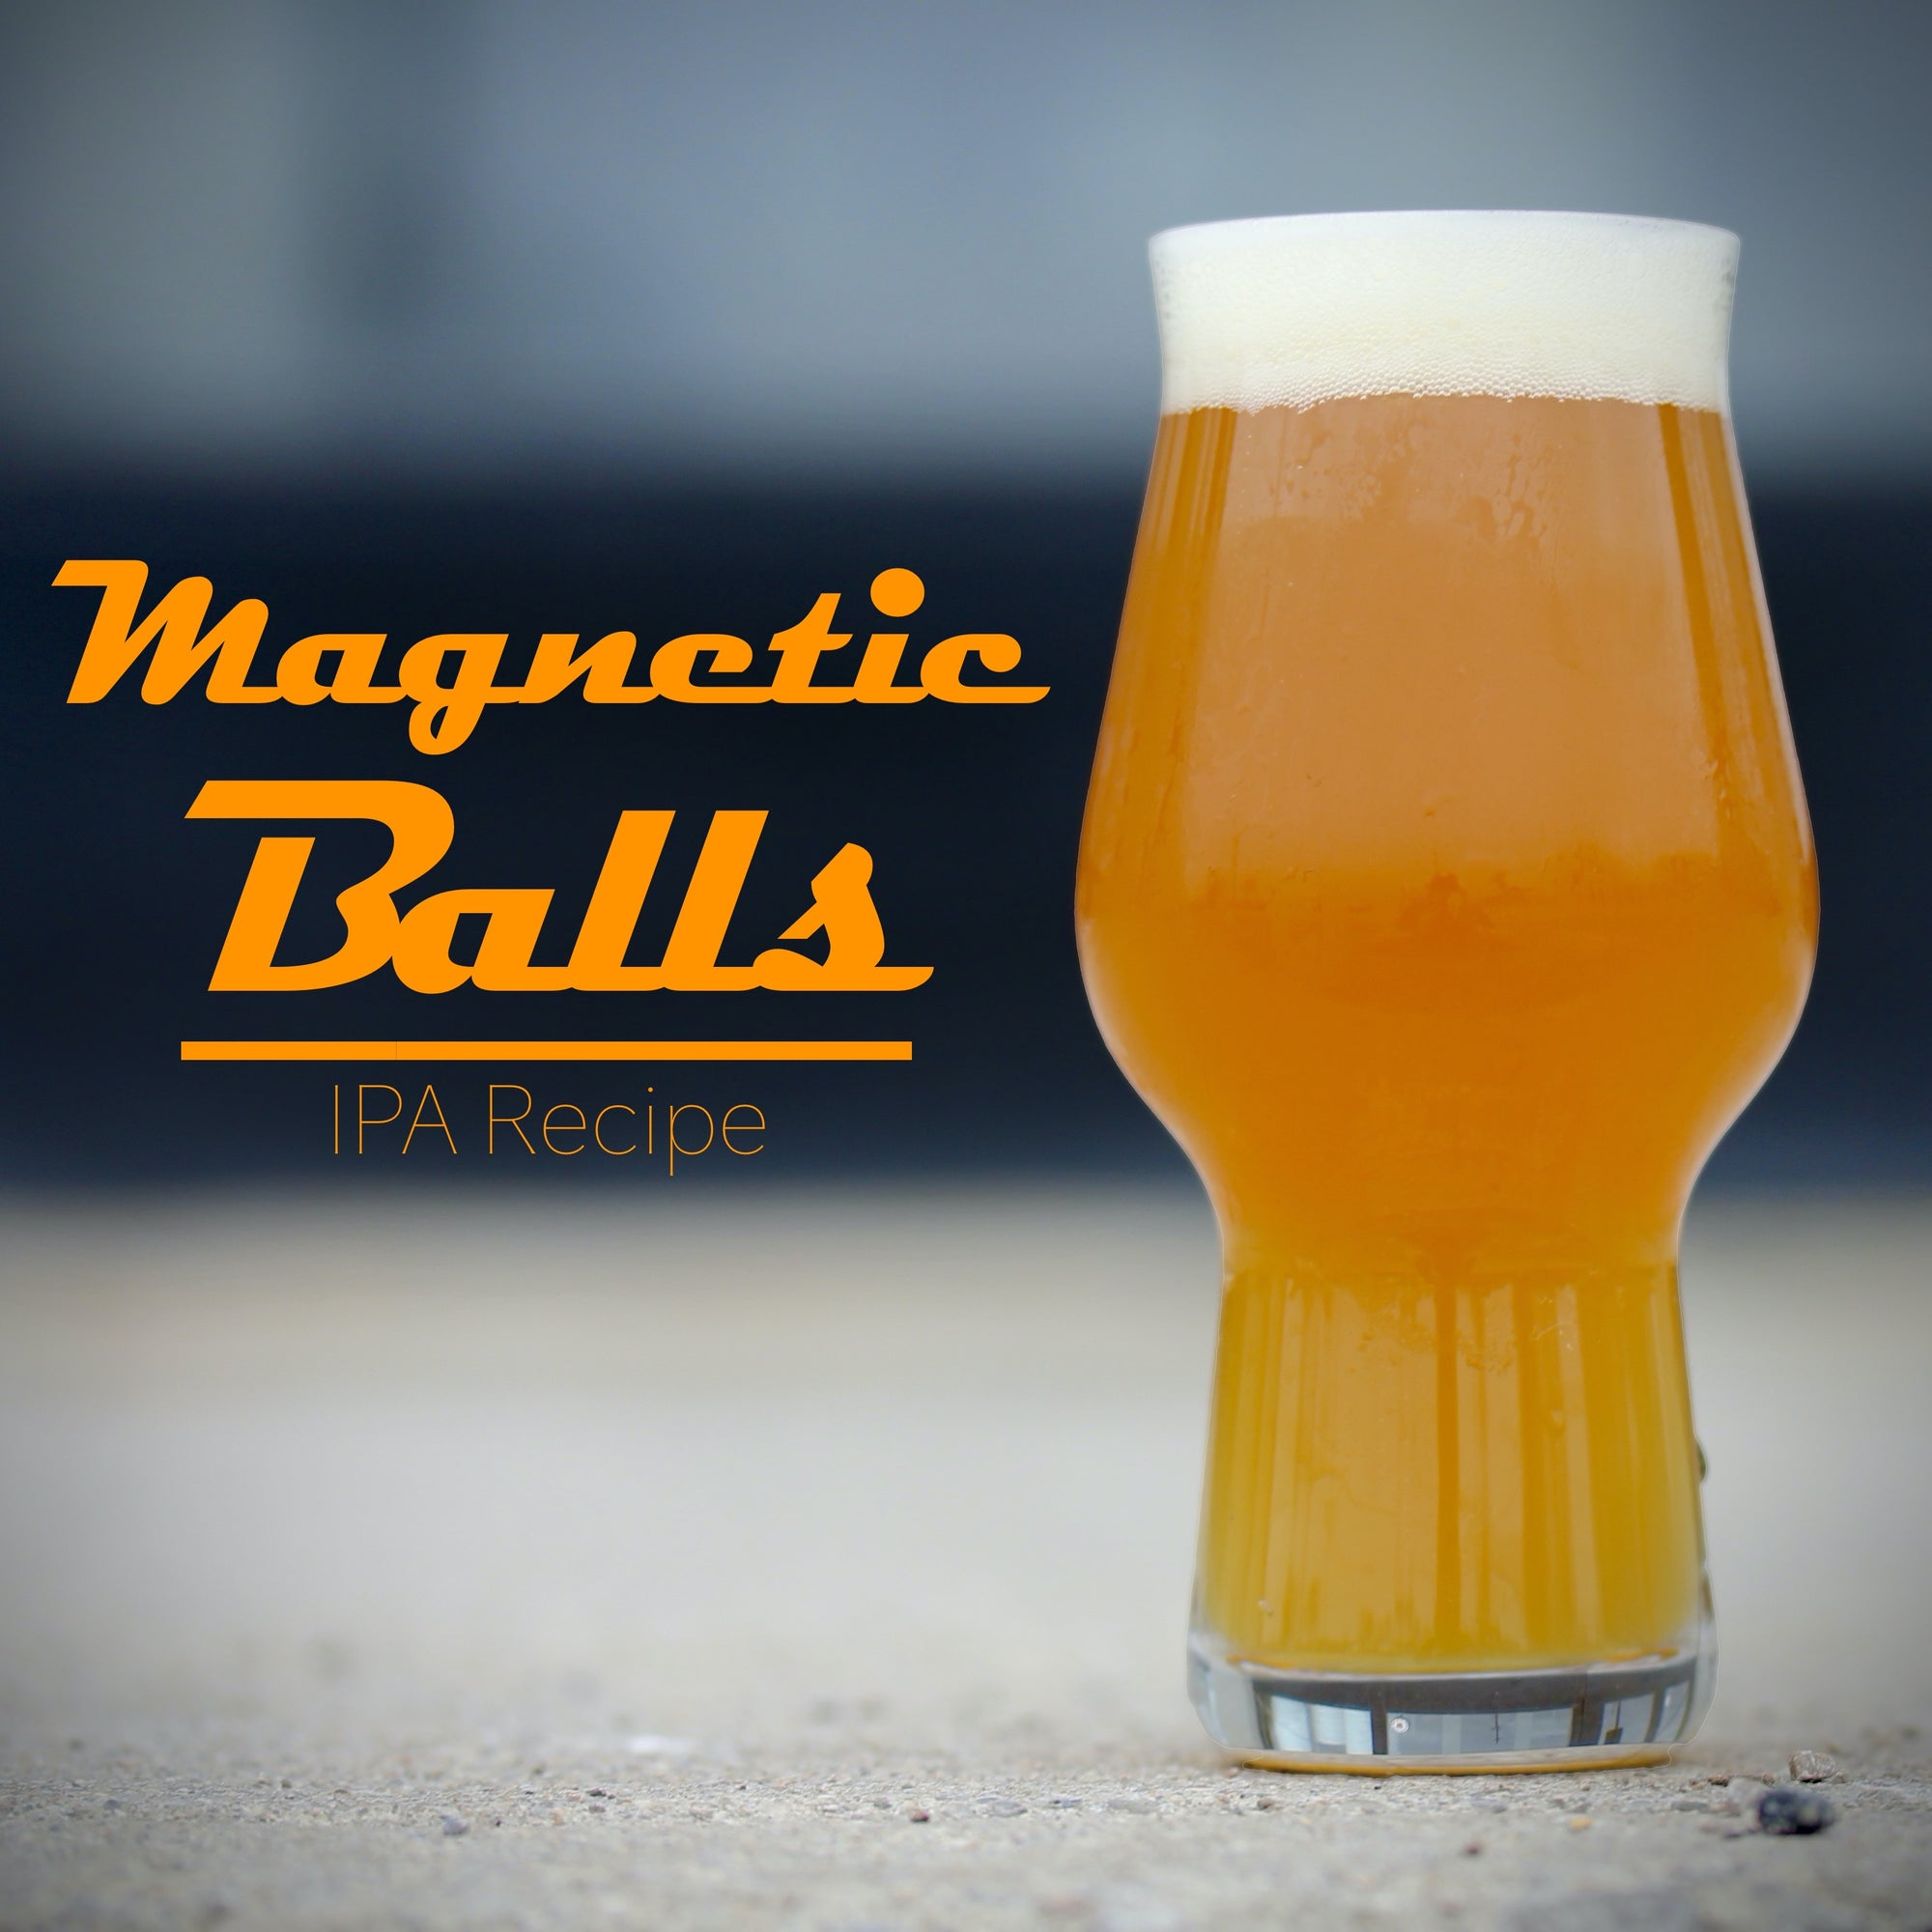 Magnetic Balls - IPA Recipe